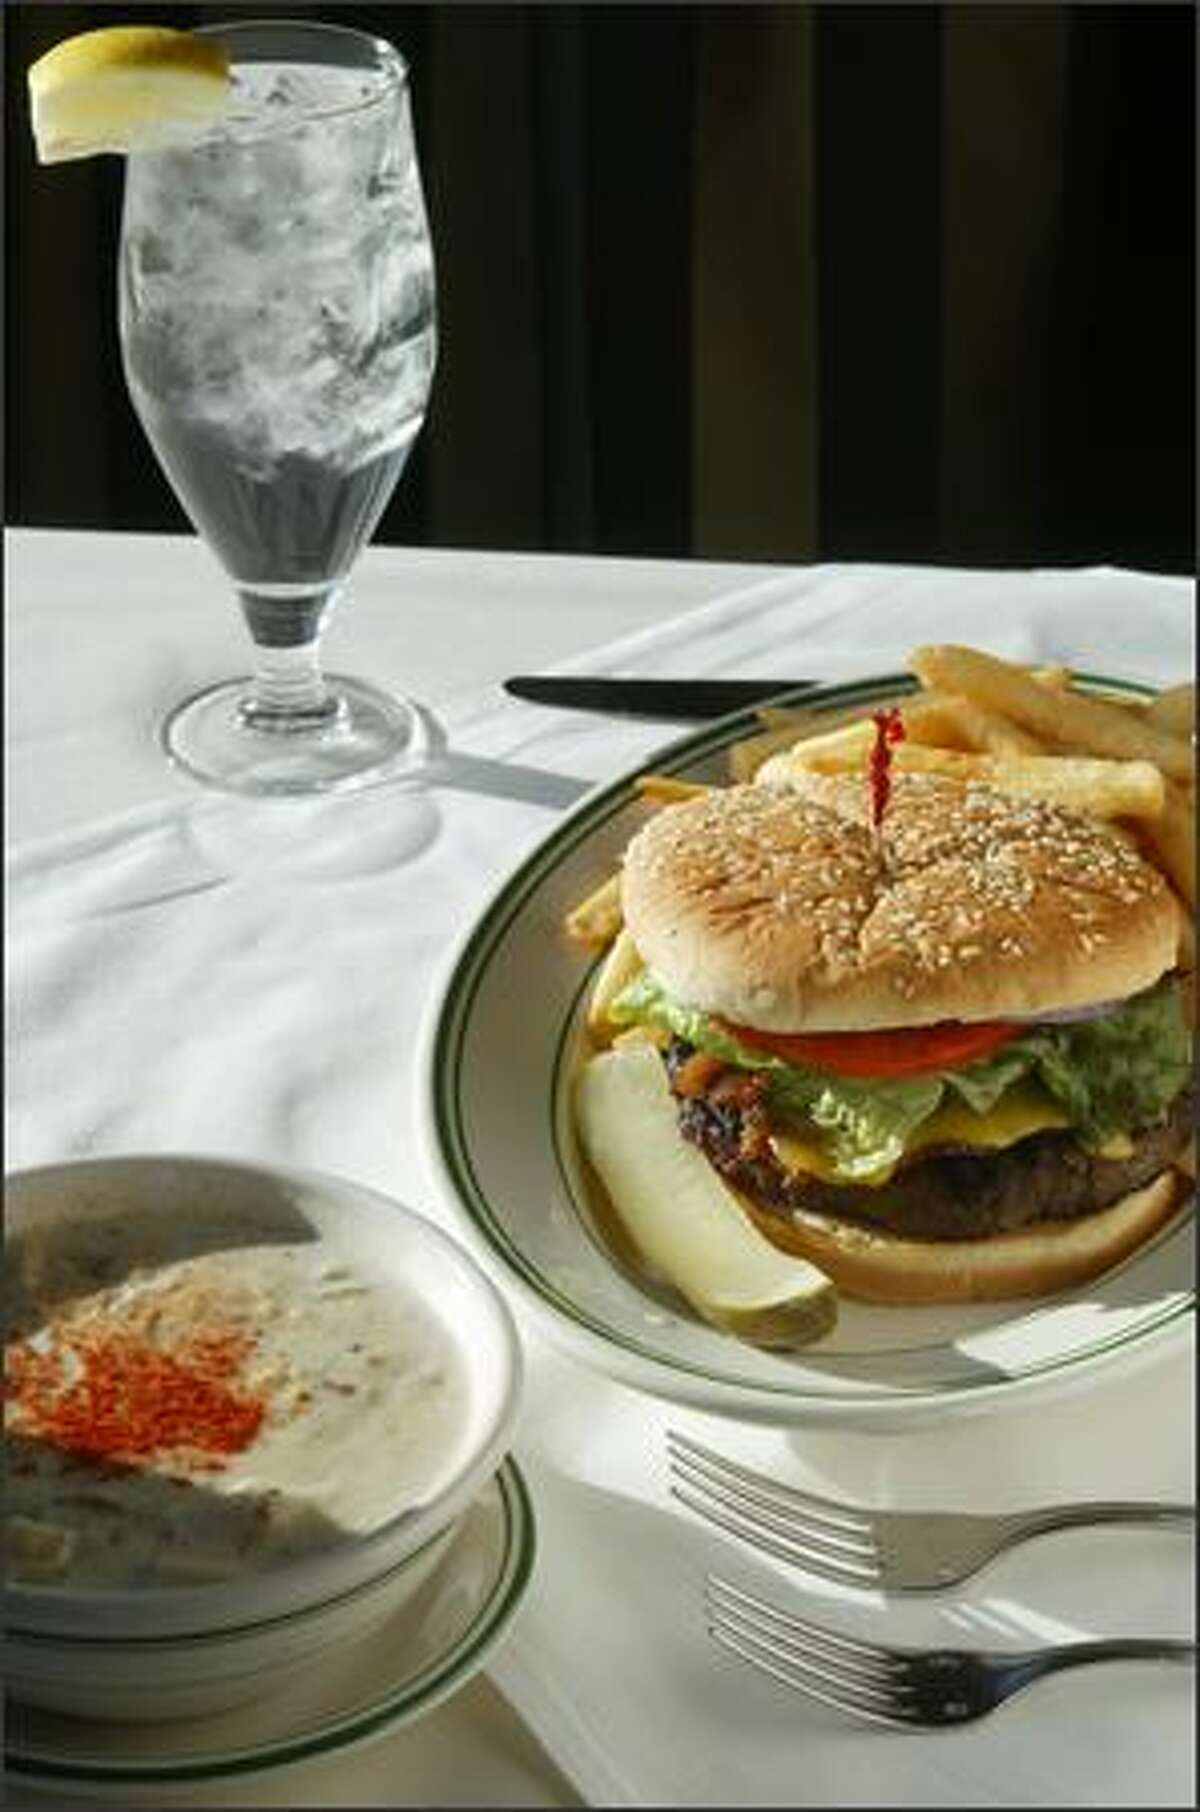 An Angus burger with bacon and cheese and a bowl of clam chowder from the Pier 70 Cafe.